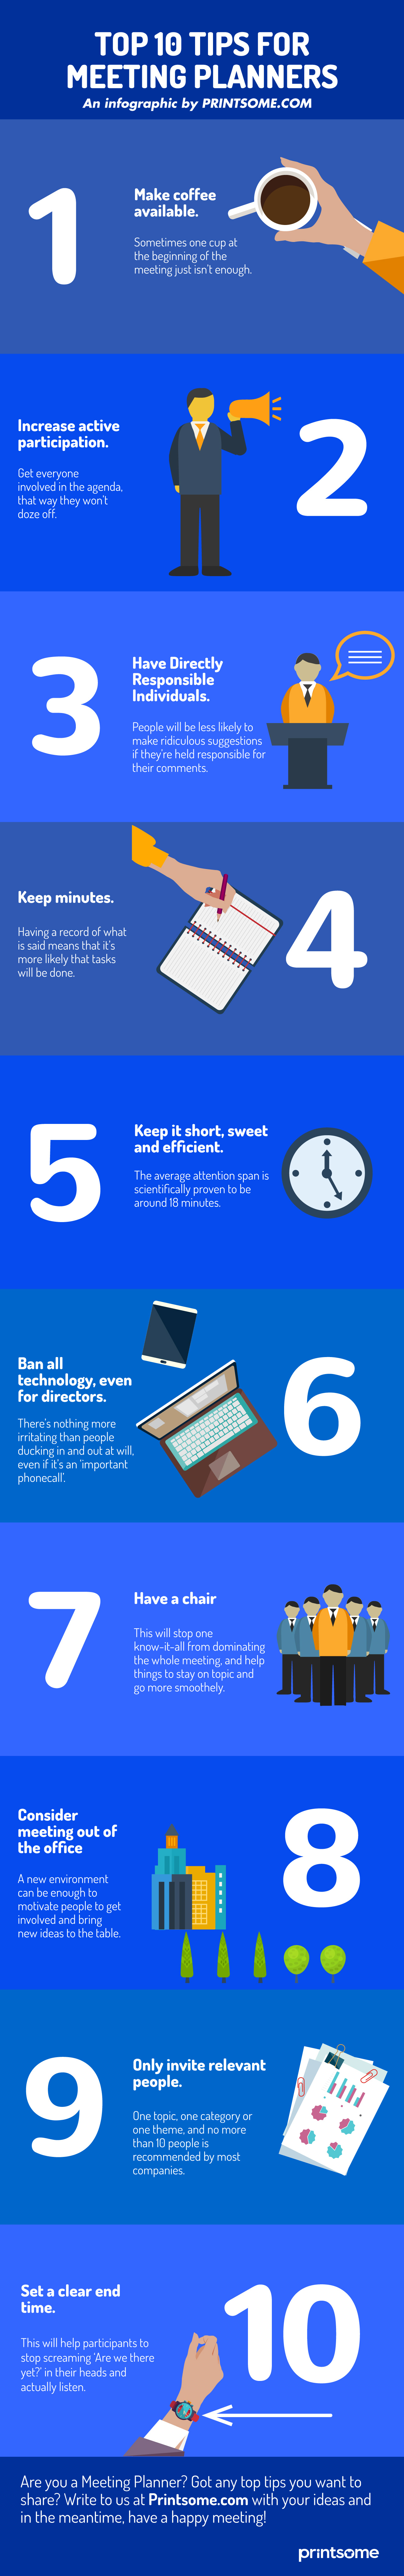 10-tips-for-meeting-planners-infographic3